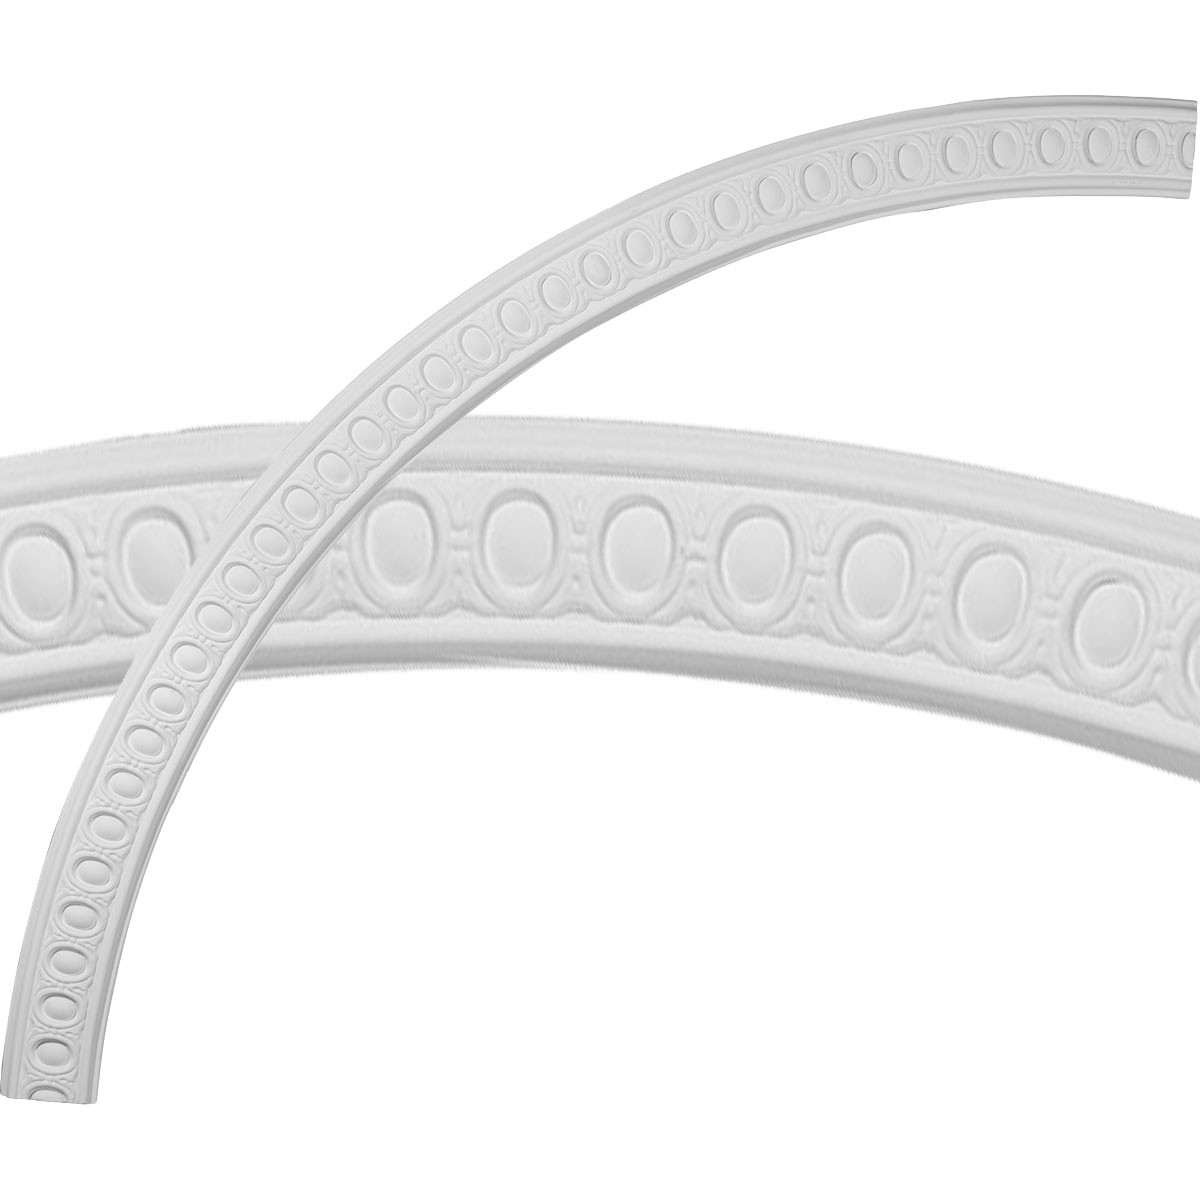 """EM-CR70CA - 70""""OD x 63 1/2""""ID x 3 1/4""""W x 5/8""""P Caputo Egg & Dart Ceiling Ring (1/4 of complete circle)"""